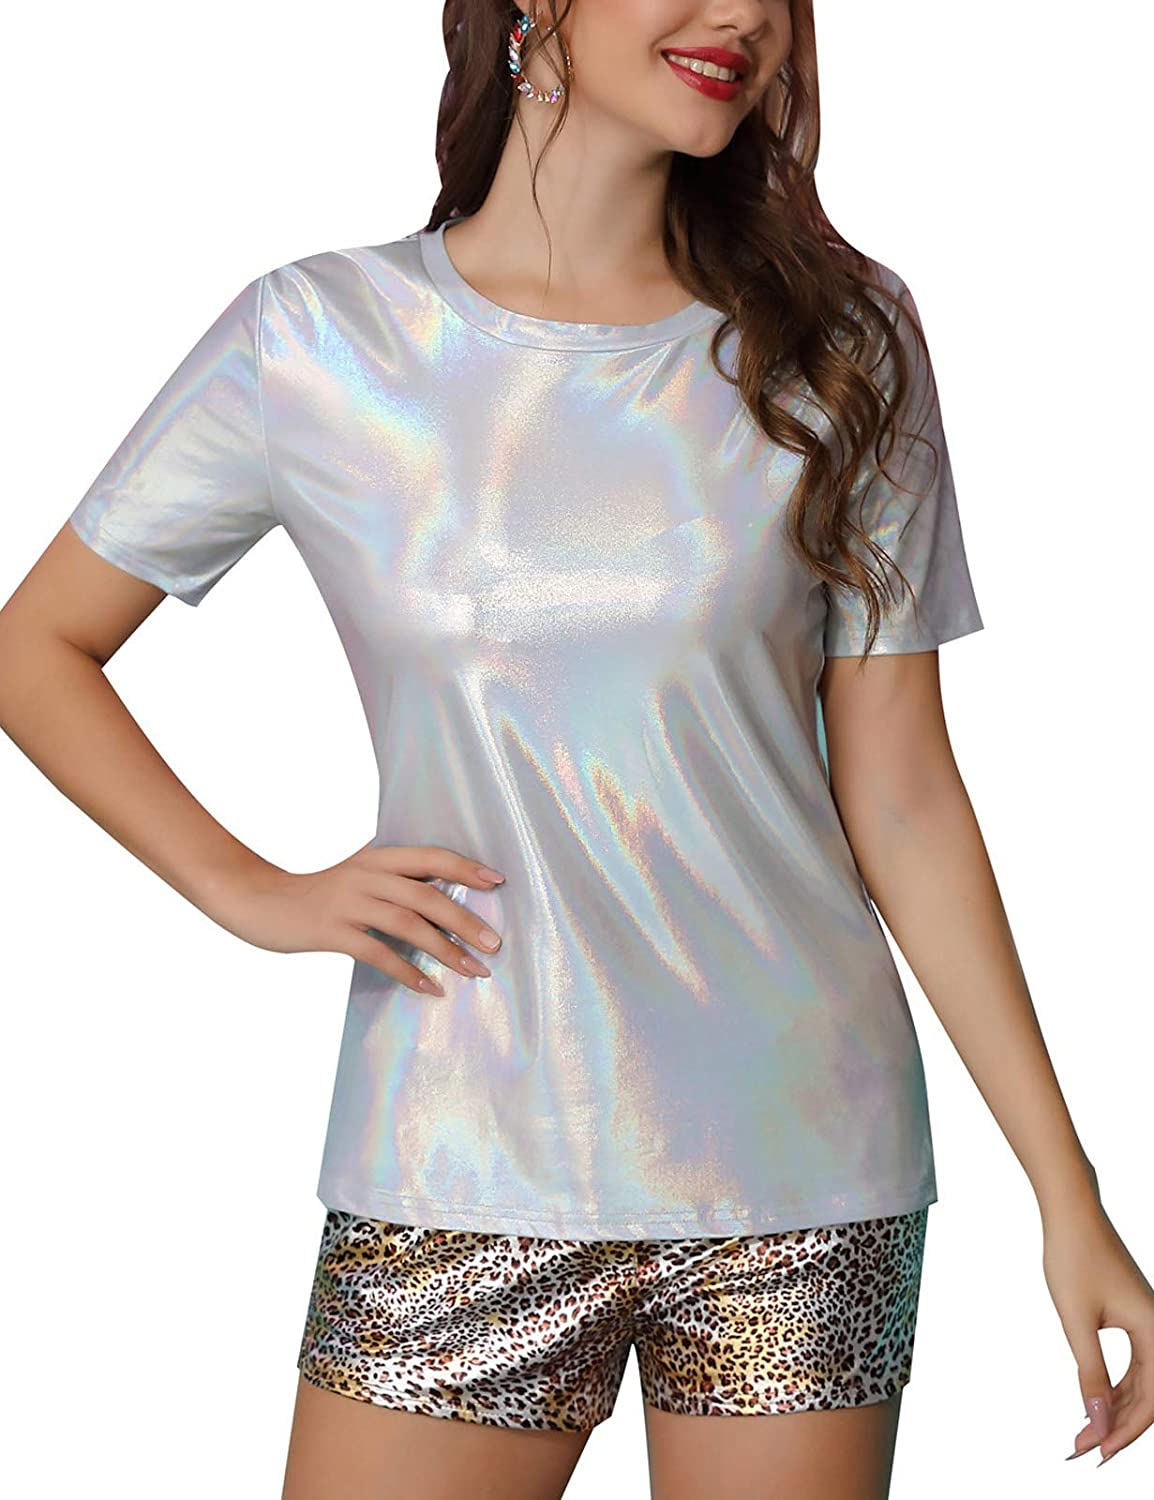 Kate Kasin Shiny Tops for Women Metallic Holographic Shirt Party Shimmer Sparkle Disco T-Shirt